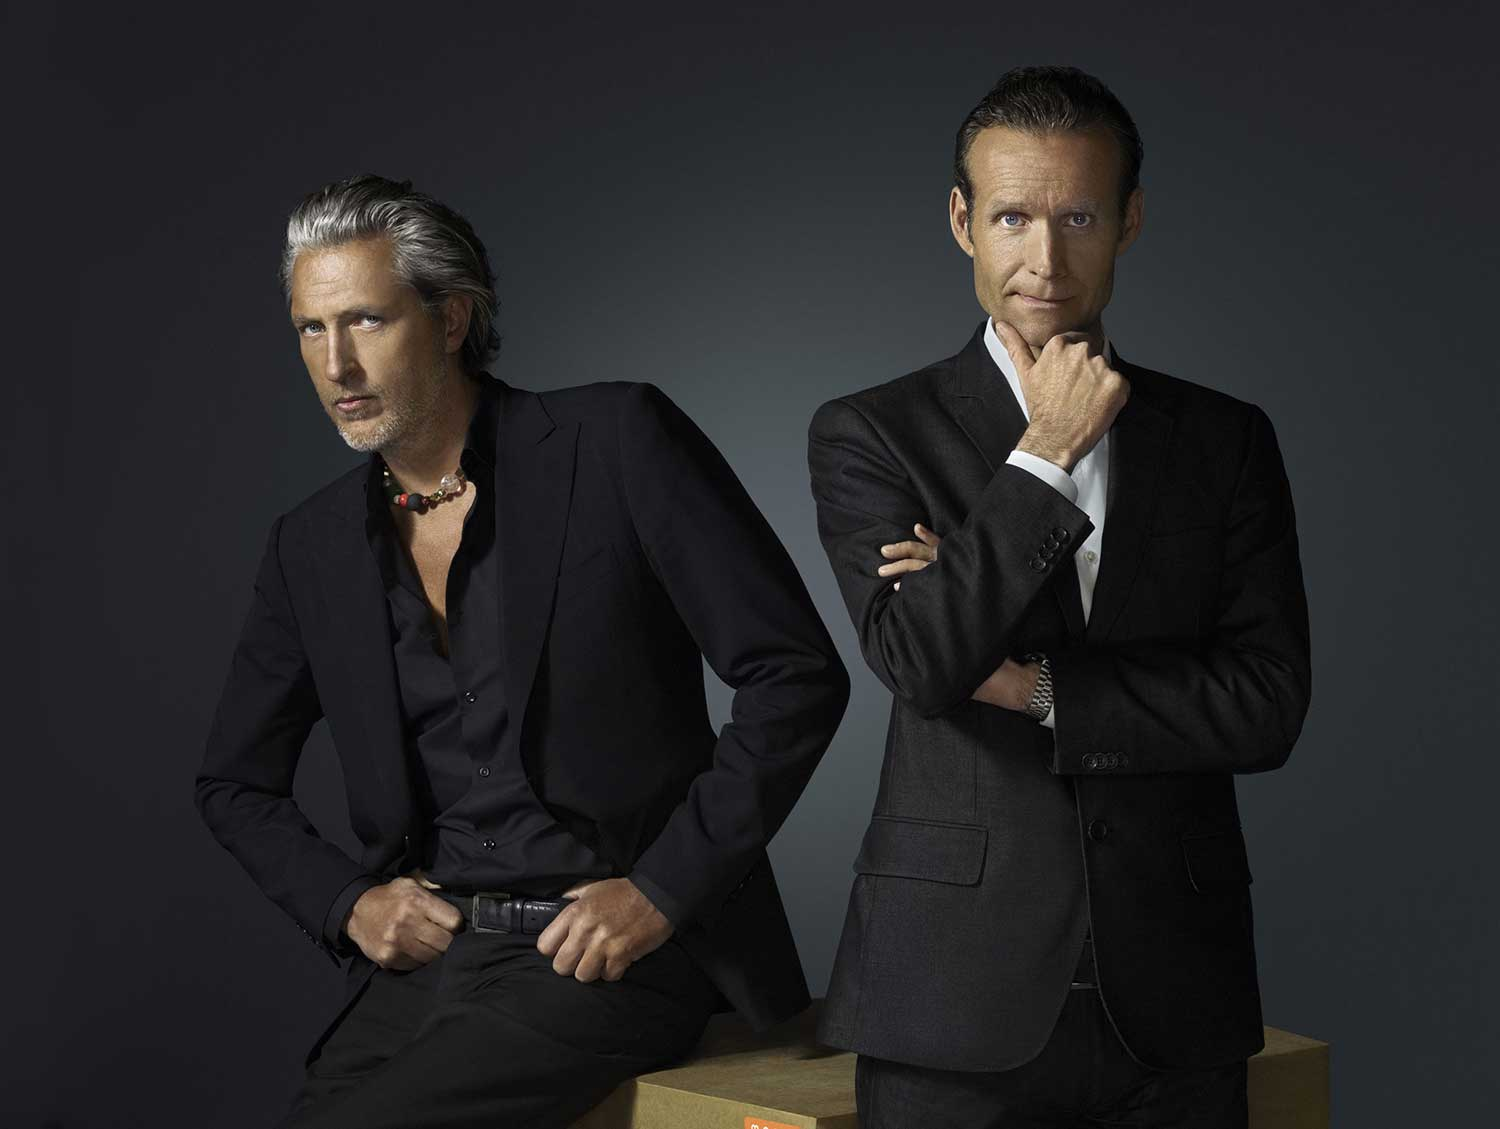 Moooi Founders - Marcel Wanders & Casper Vissers, photo by Erwin Olaf | Yellowtrace.